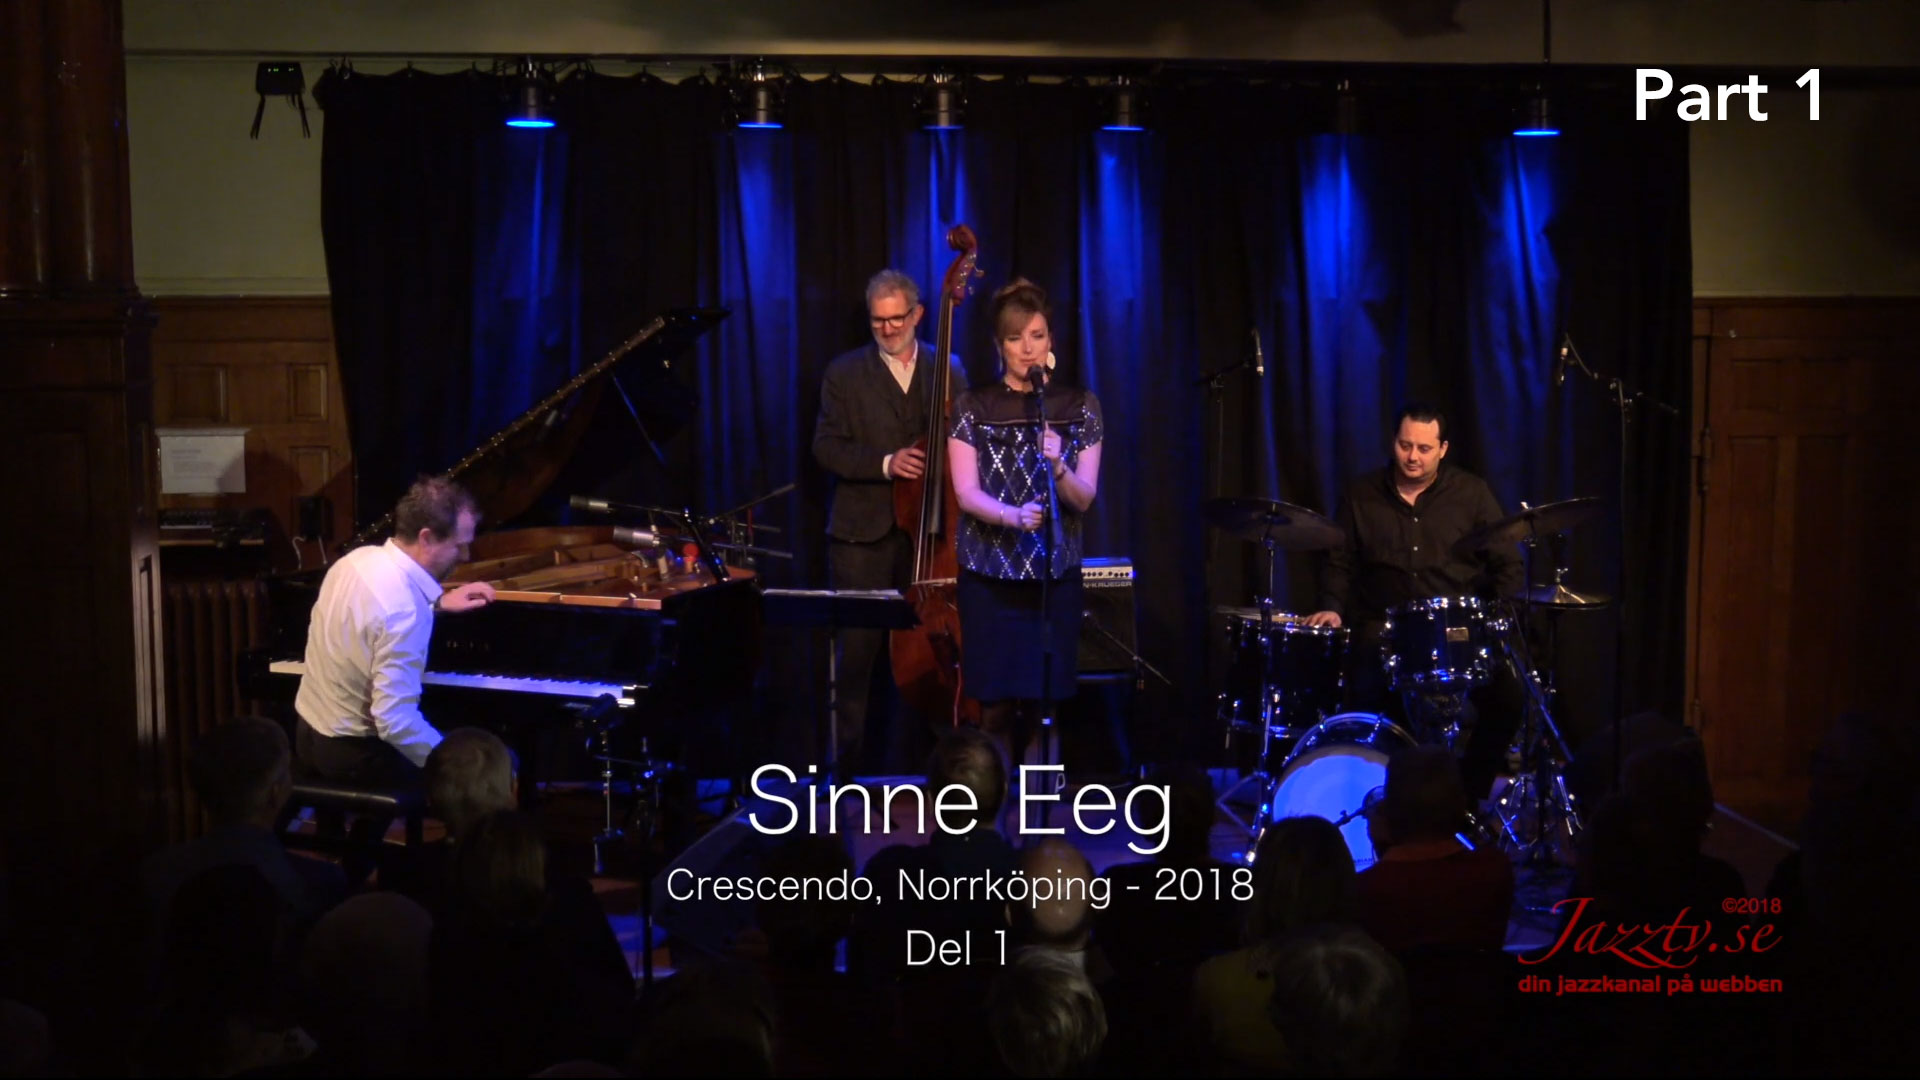 Sinne Eeg Crescendo 2018